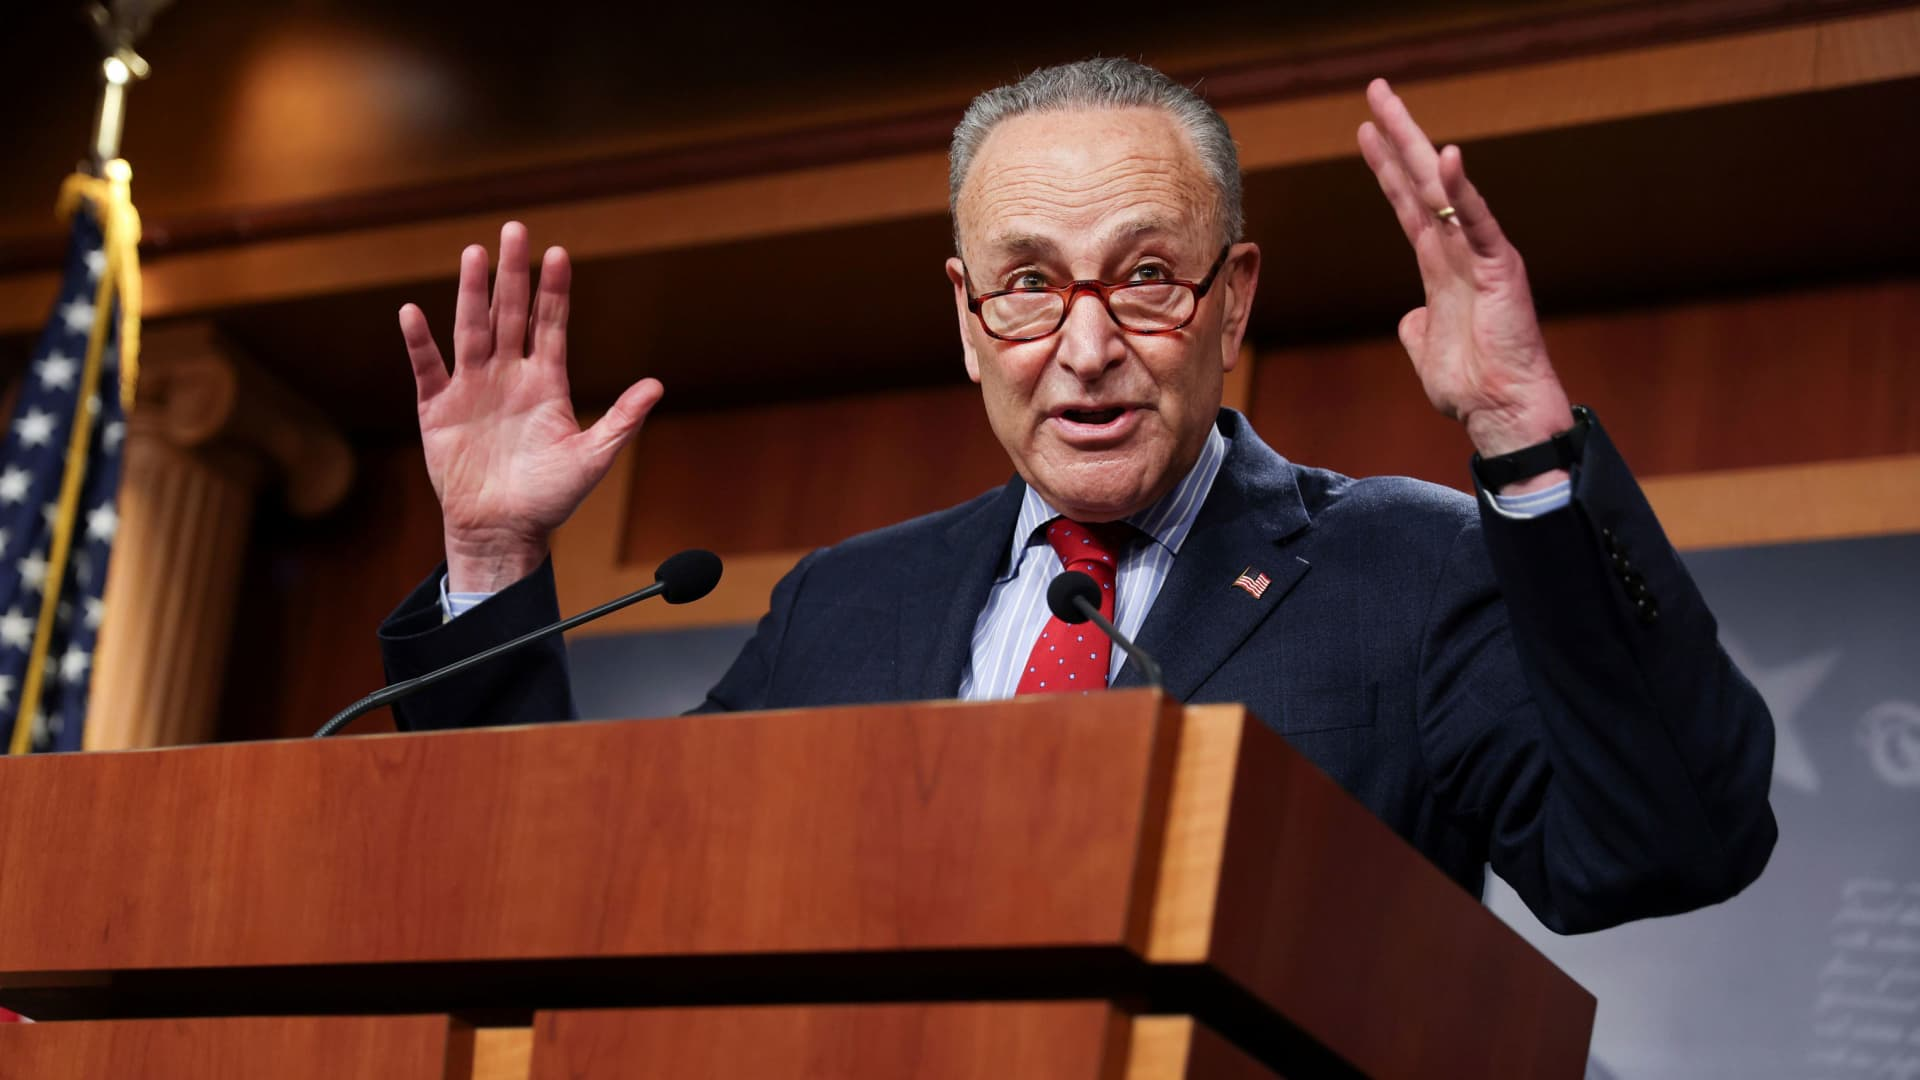 U.S. Senate Majority Leader Chuck Schumer (D-NY) touts Senate Democrats legislative accomplishments as he holds a news conference at the U.S. Capitol in Washington, March 25, 2021.